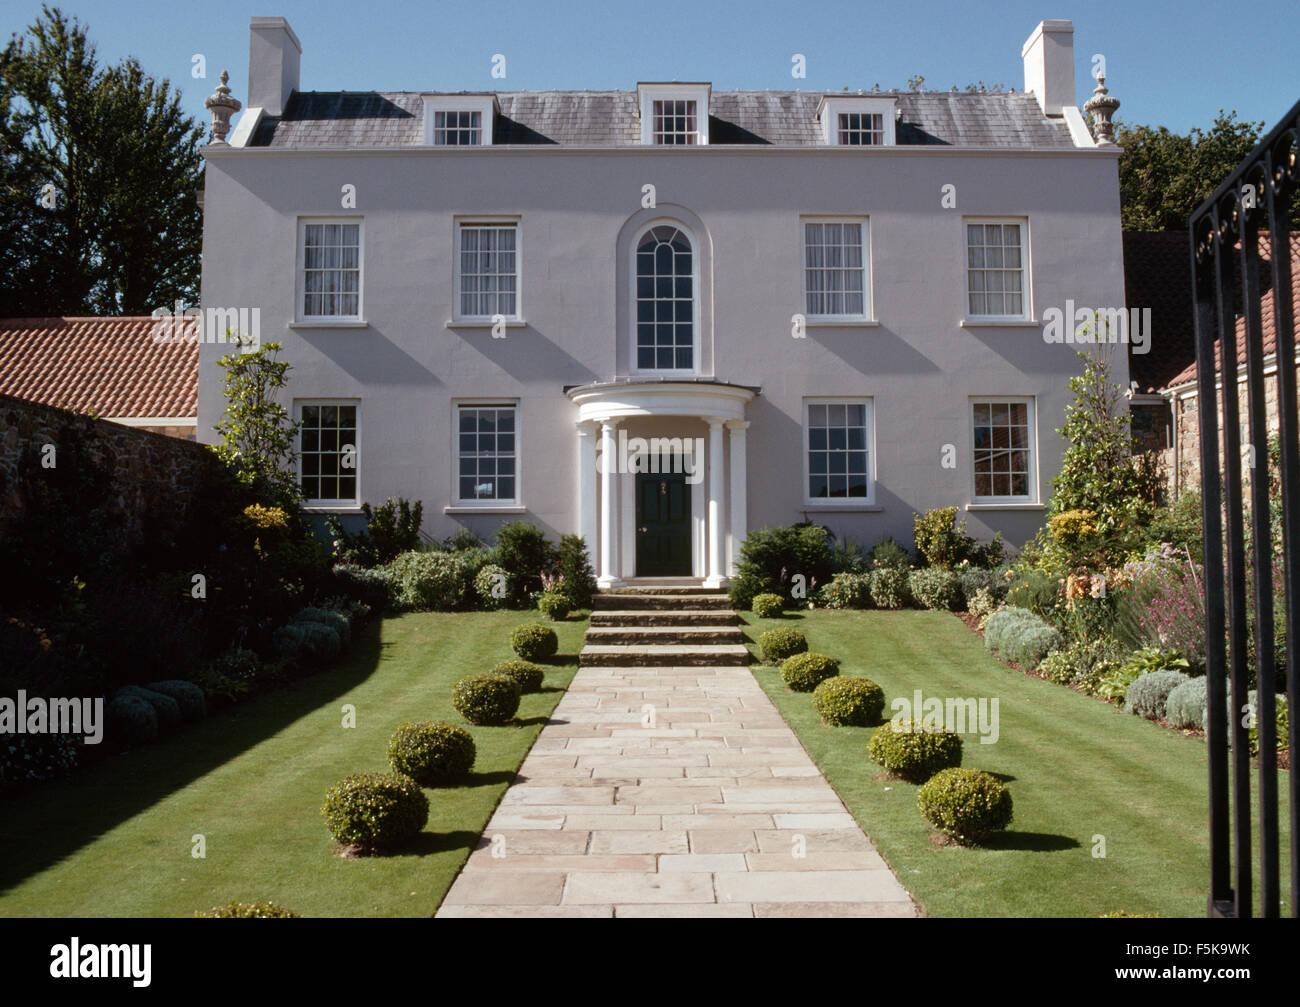 Wondrous Exterior Of A Georgian Country House With Clipped Box Balls Download Free Architecture Designs Scobabritishbridgeorg